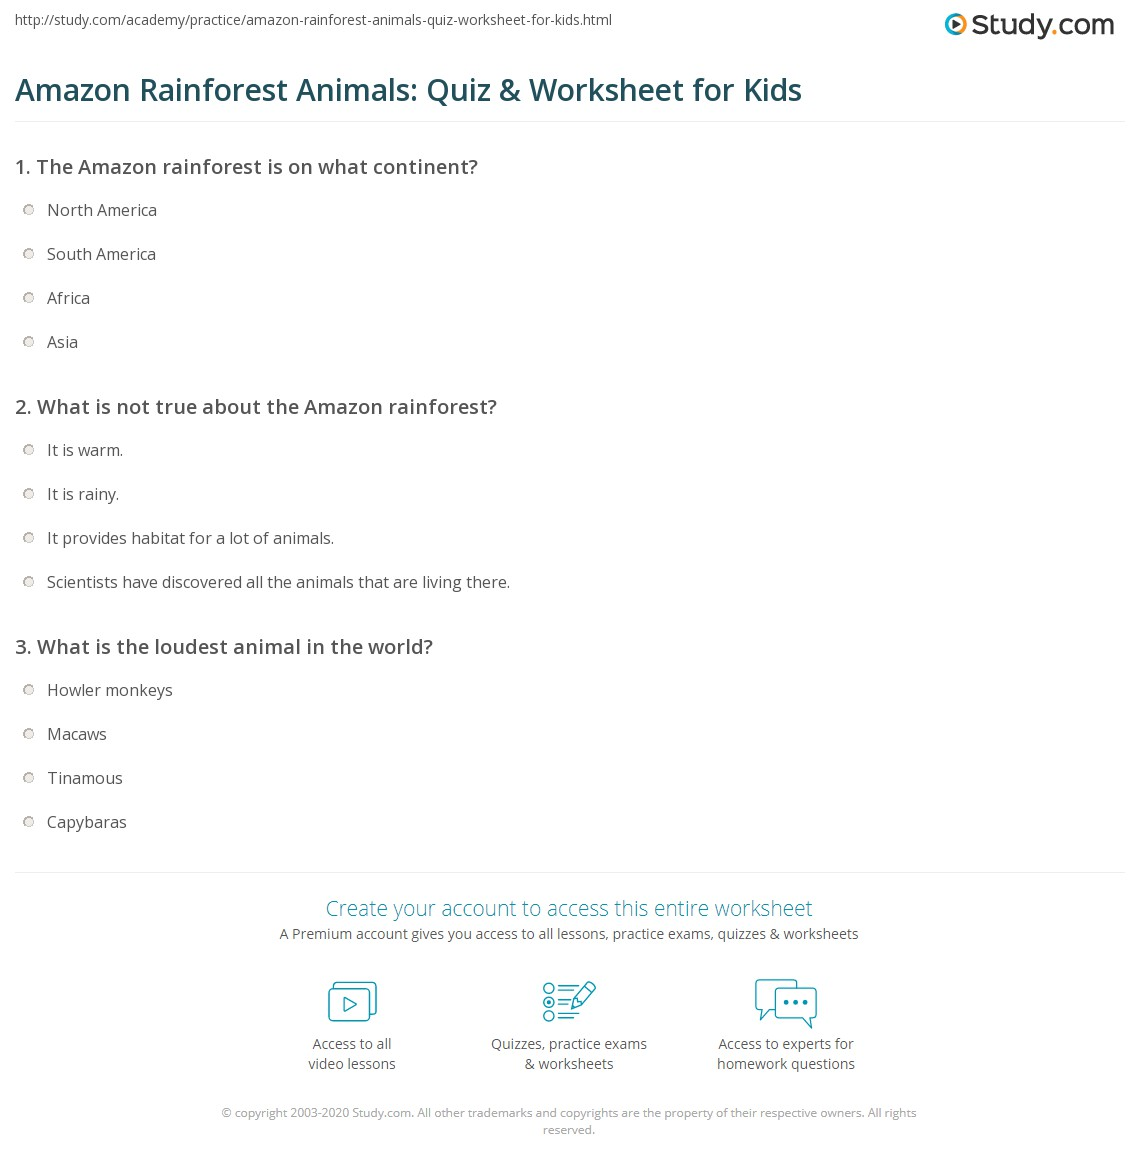 Amazon Rainforest Worksheets - Tecnologialinstante